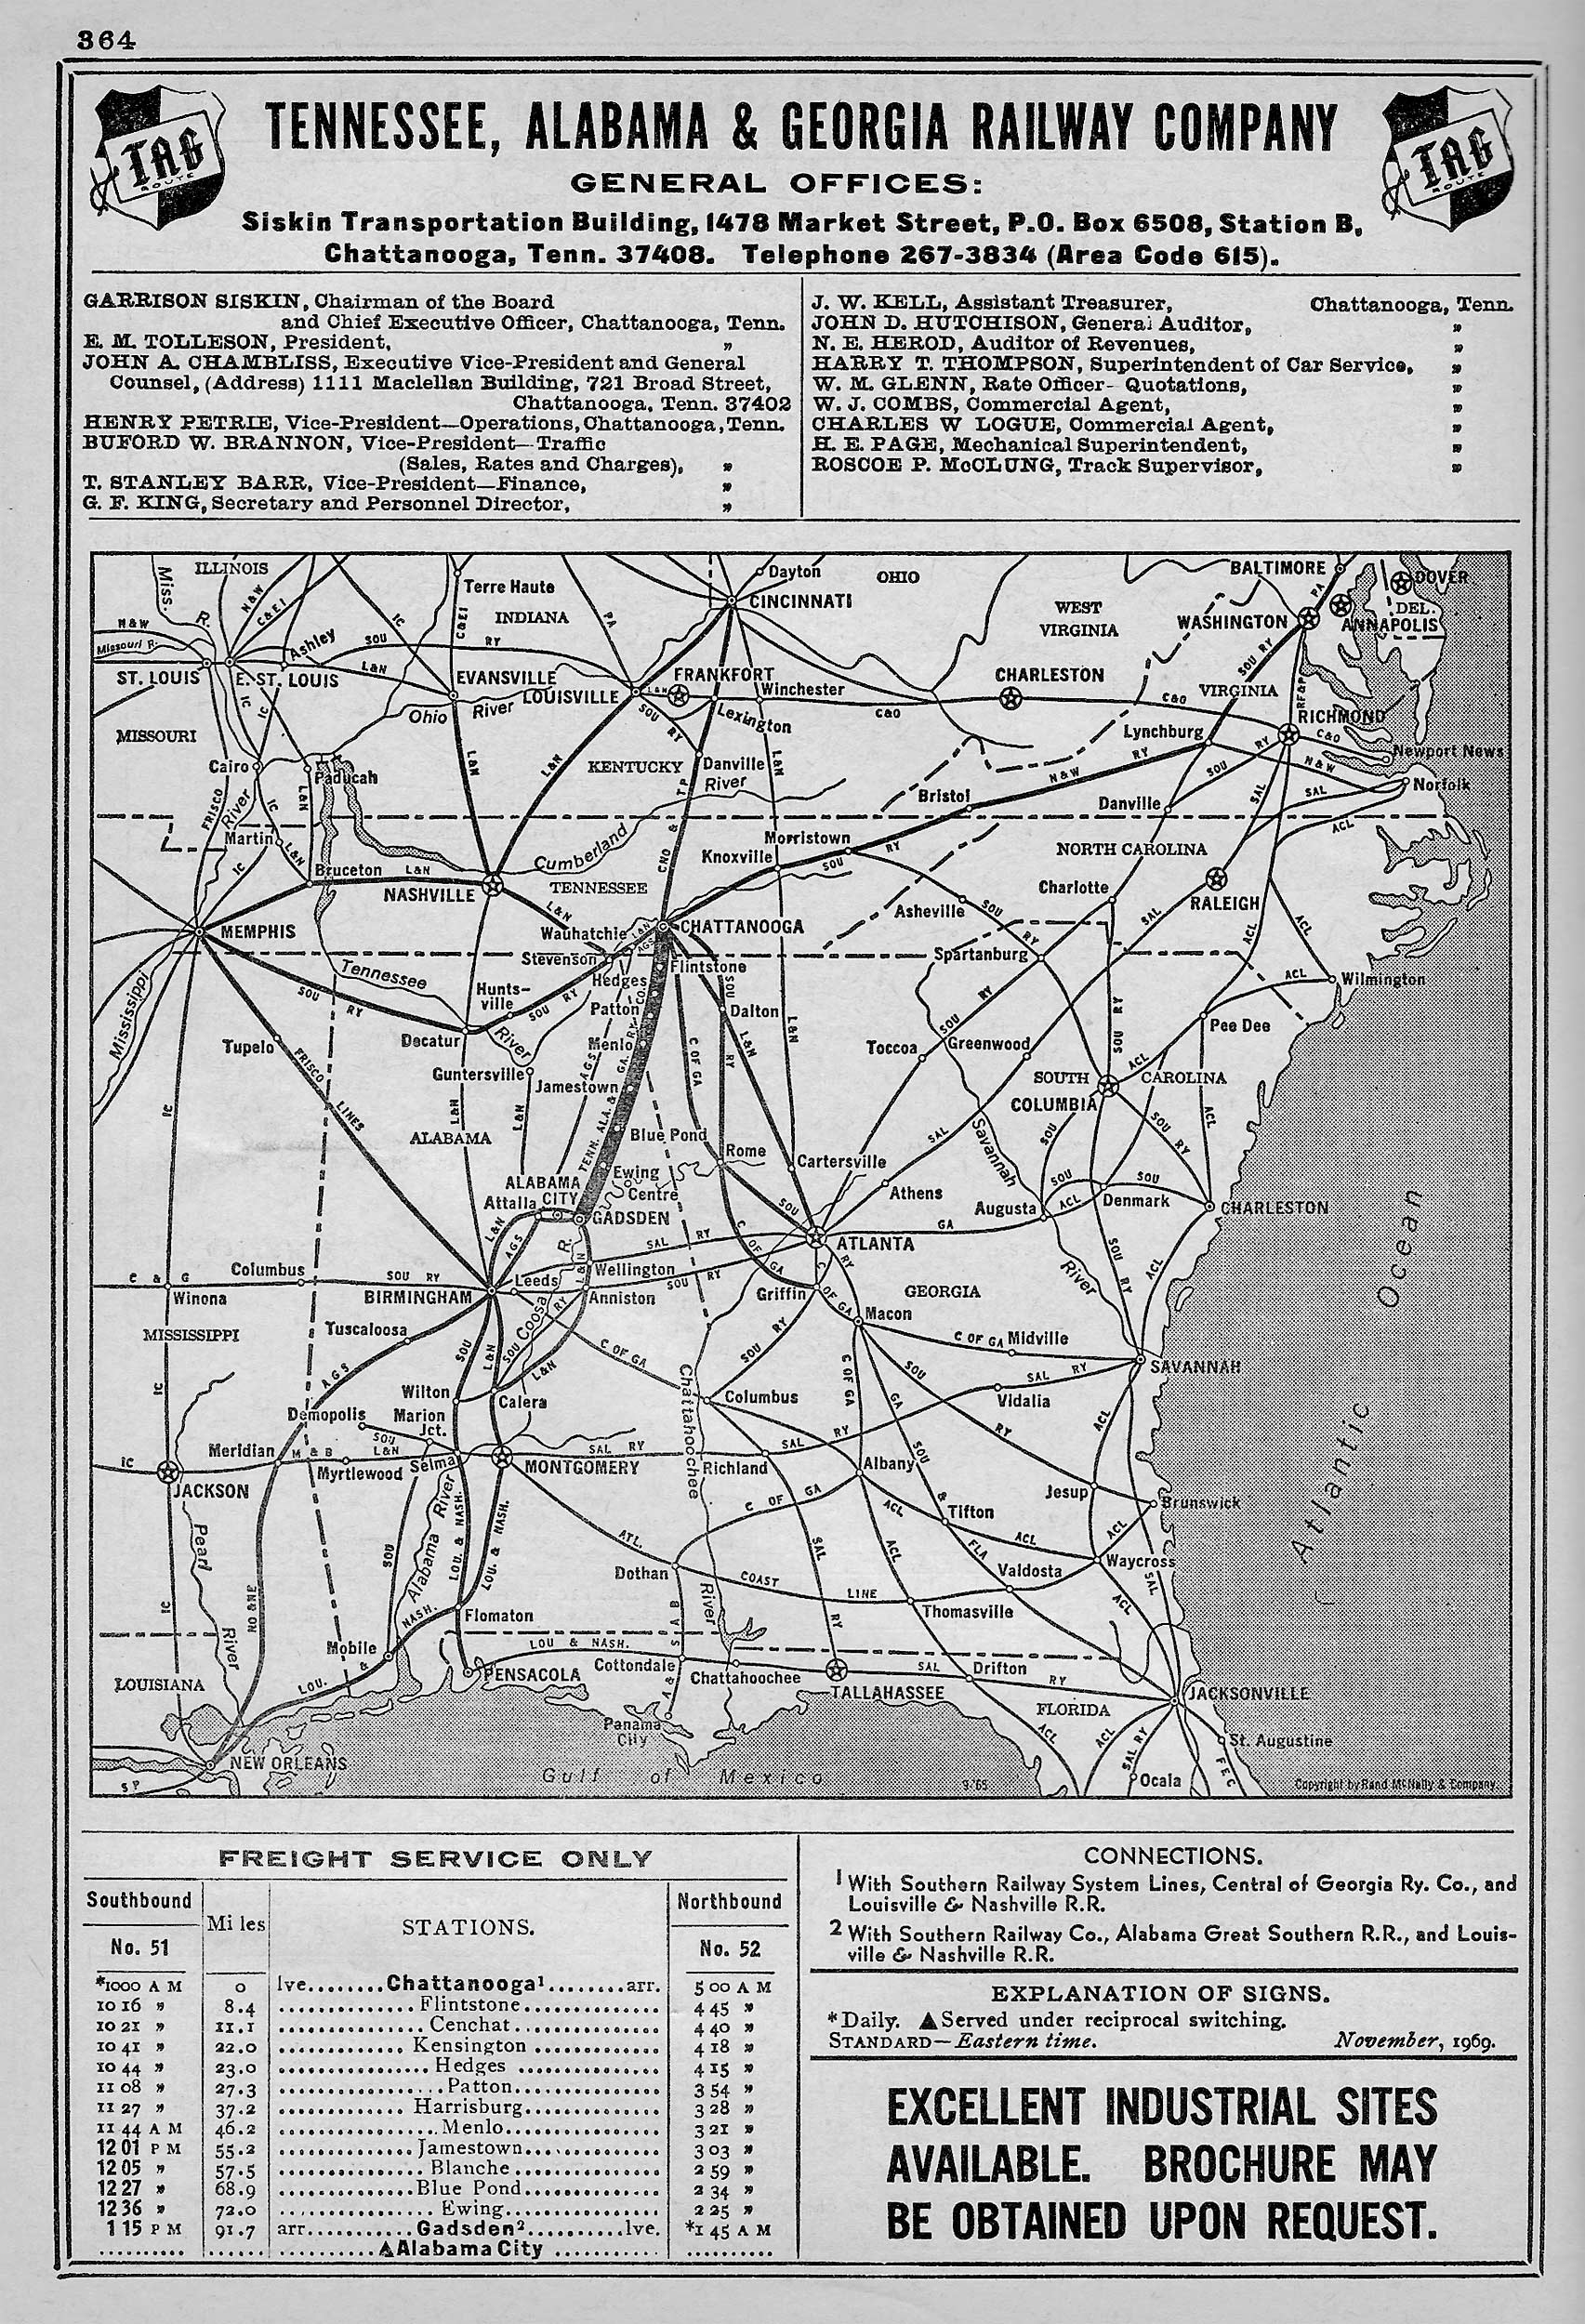 map of georgia alabama line, map of counties of georgia, map of georgia geology, county map georgia and alabama, map mississippi and alabama, map tuscaloosa al, map of lagrange georgia, map of sw georgia, map of southern montana, map tennessee and alabama, map of northwest ga, on detailed map of alabama and georgia